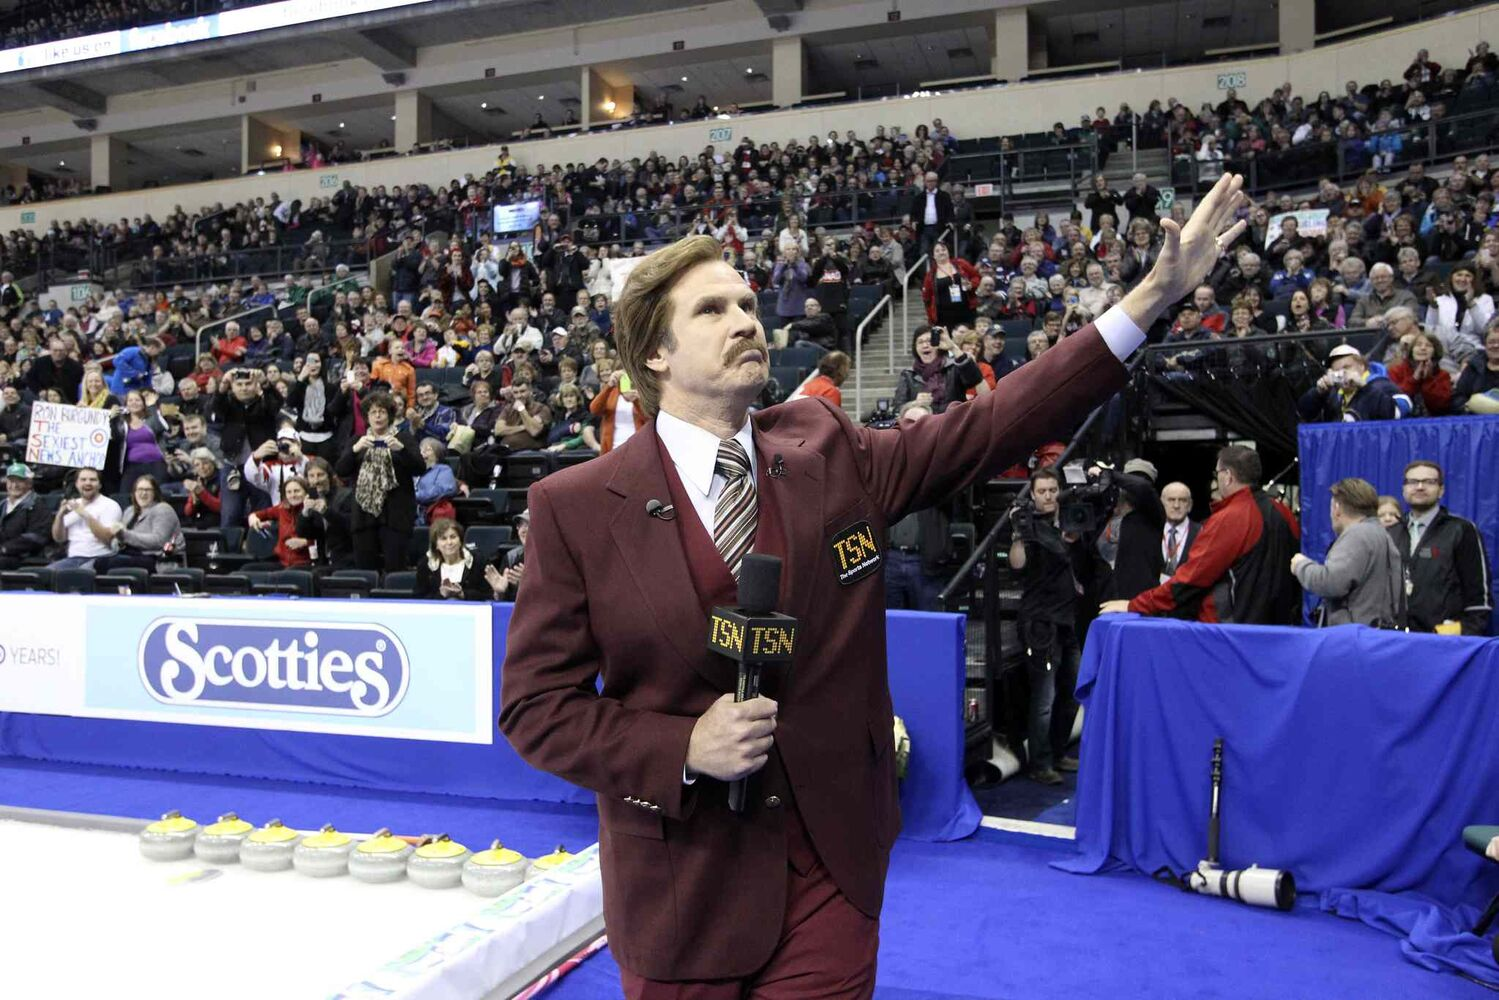 Ron Burgundy waves to his fans during the opening ceremony.